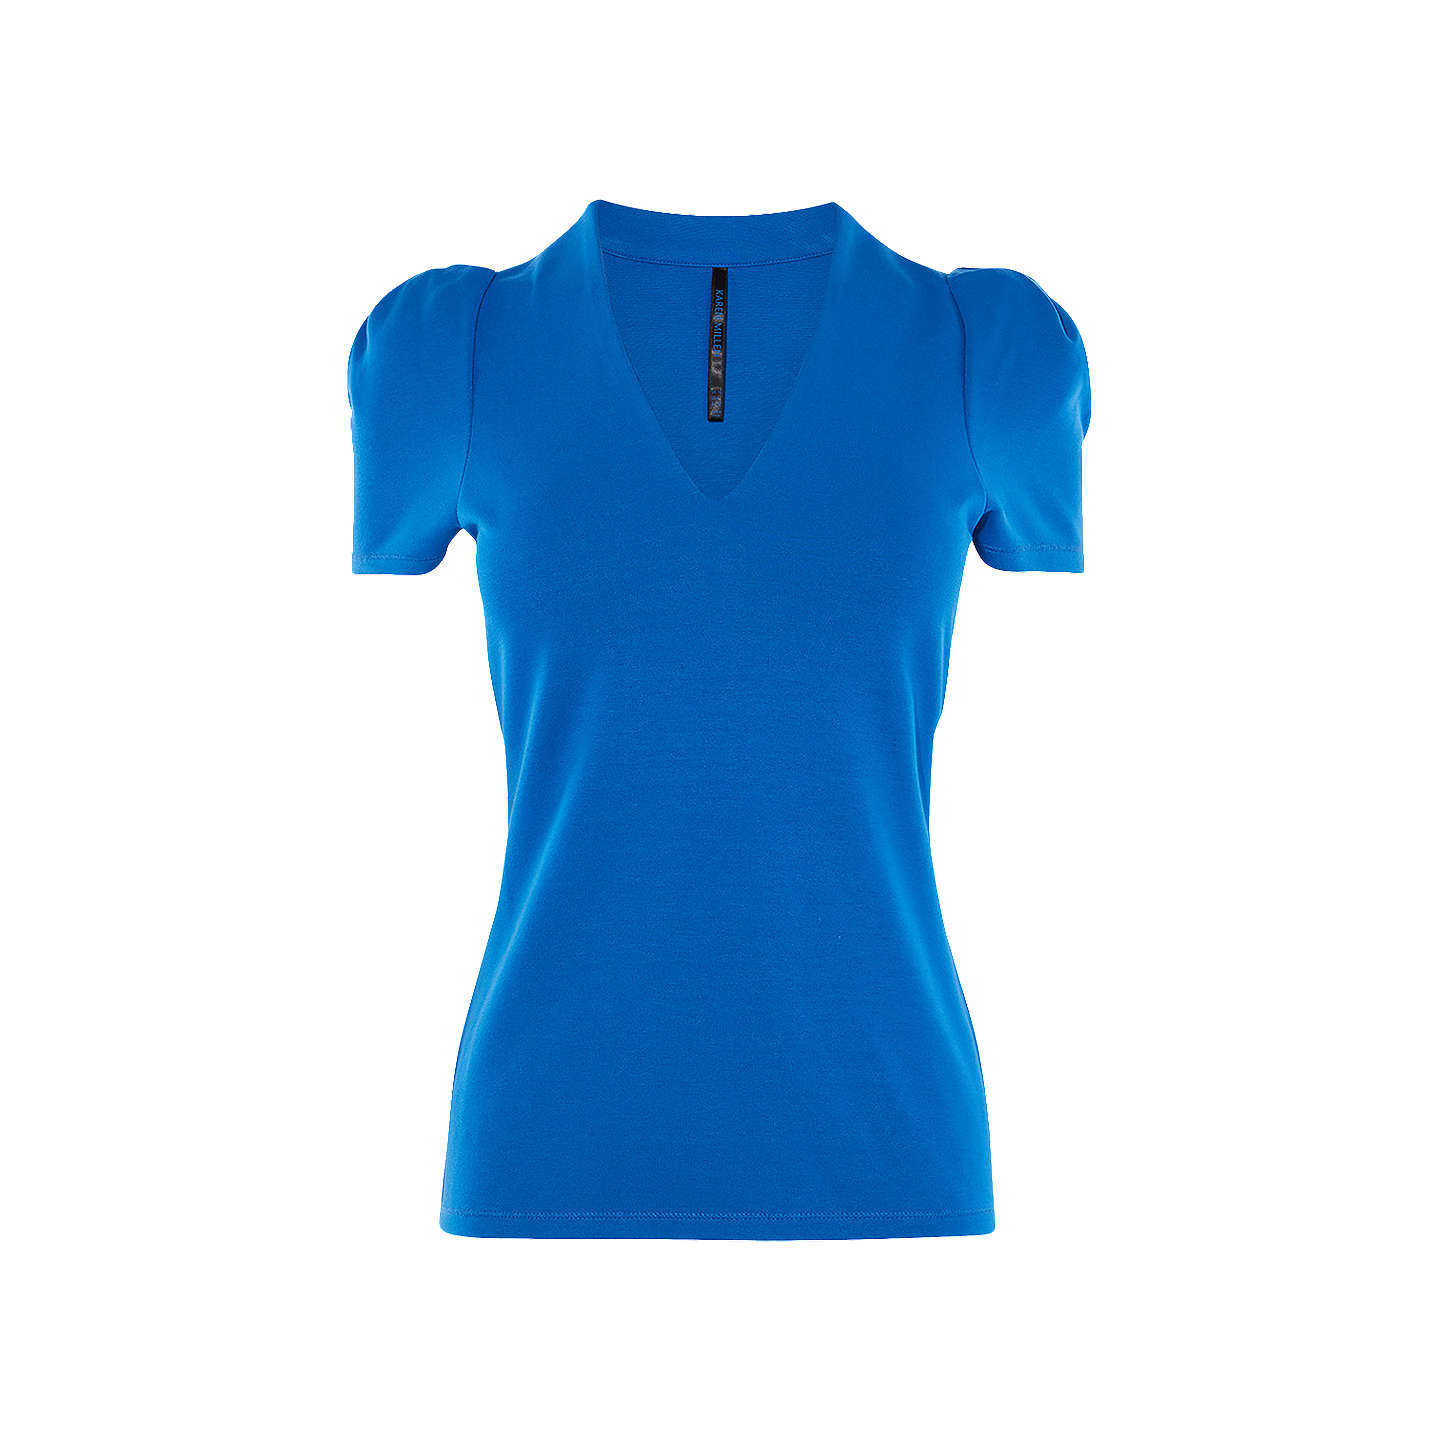 BuyKaren Millen Drama Top, Blue, 8 Online at johnlewis.com